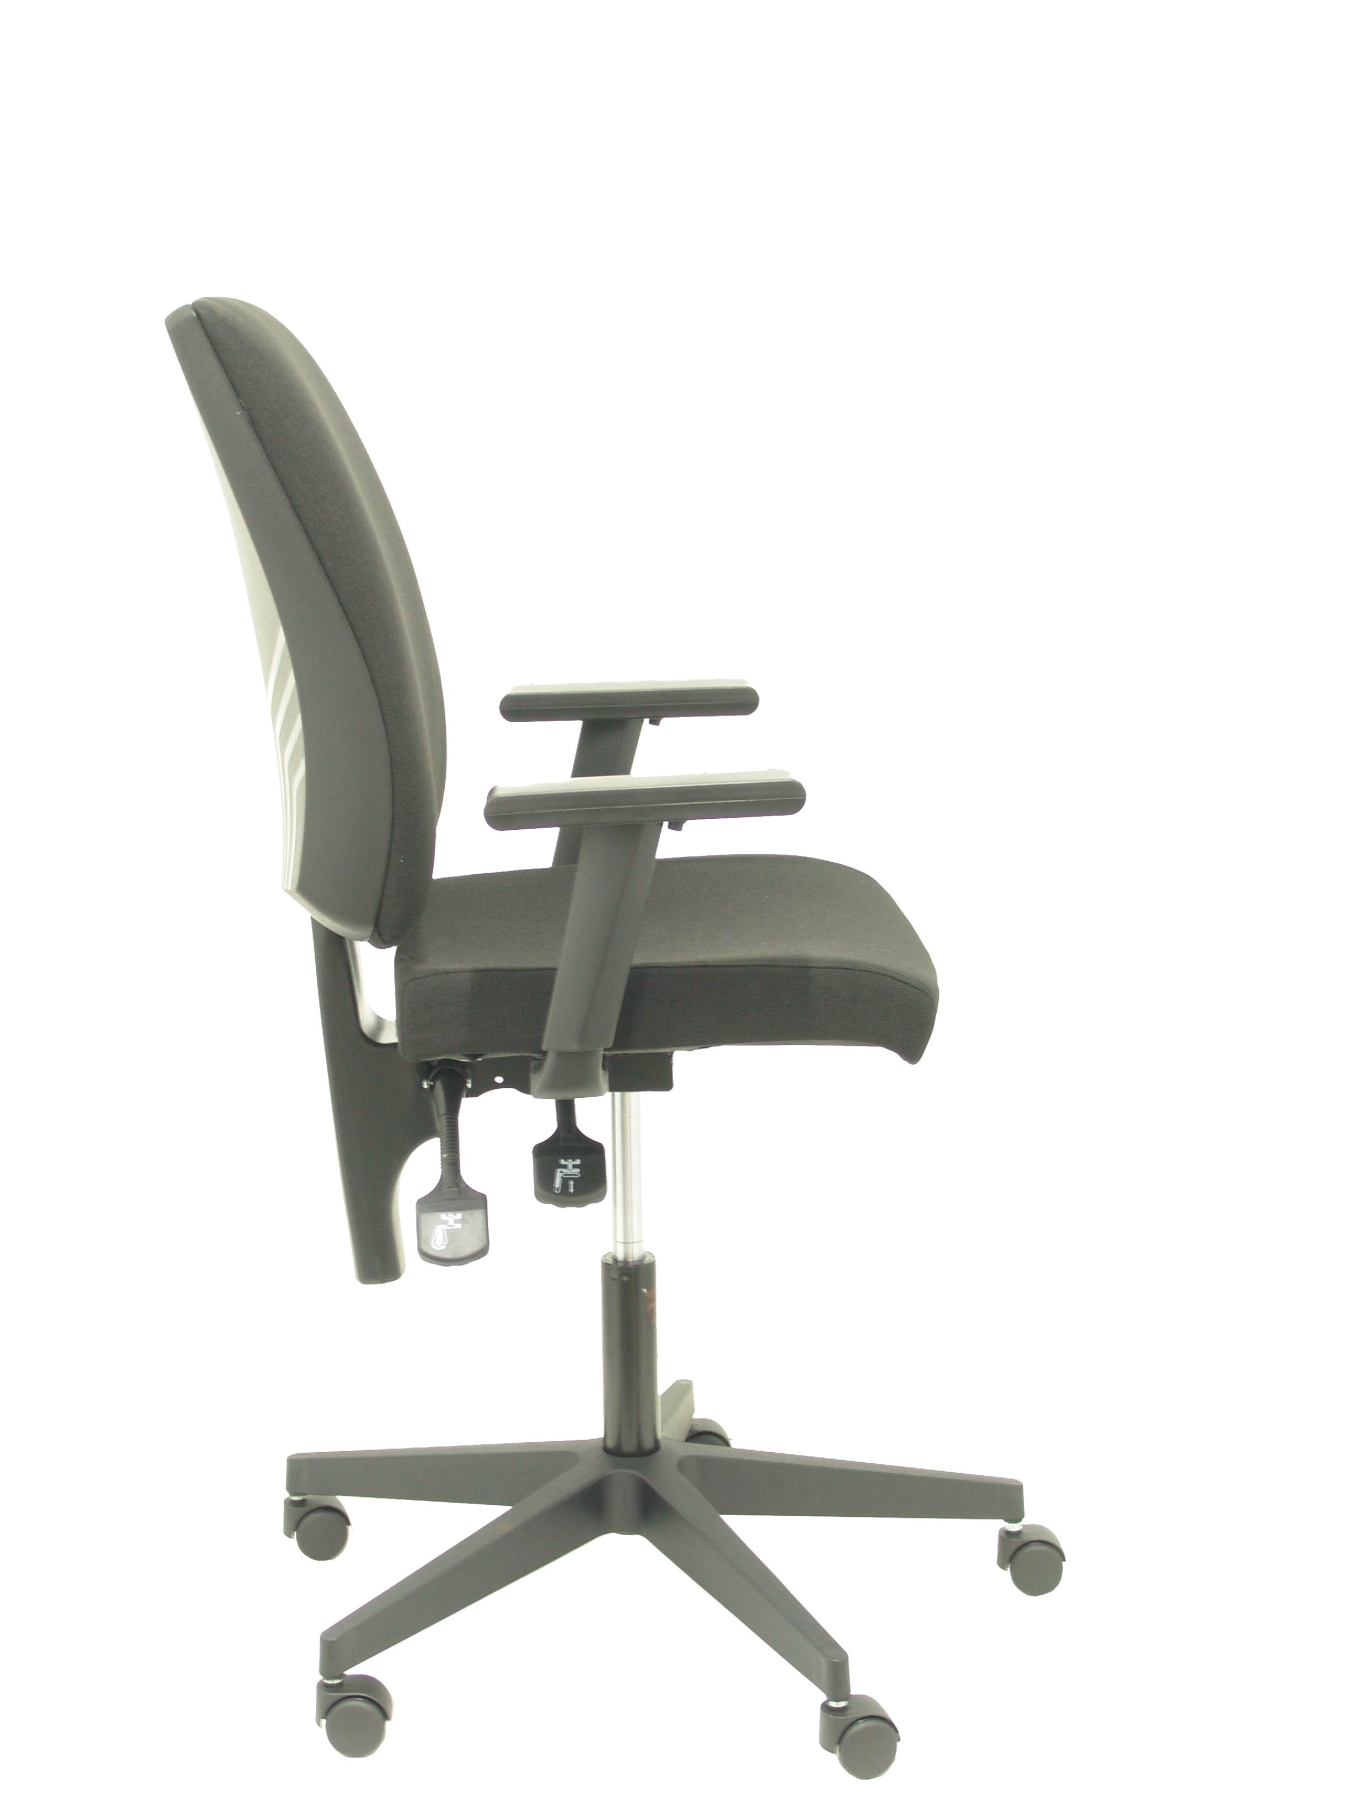 Ergonomic Office Chair Mechanism's Constant Contact Double Handle, Arms Dimmable. -Backup And Asie